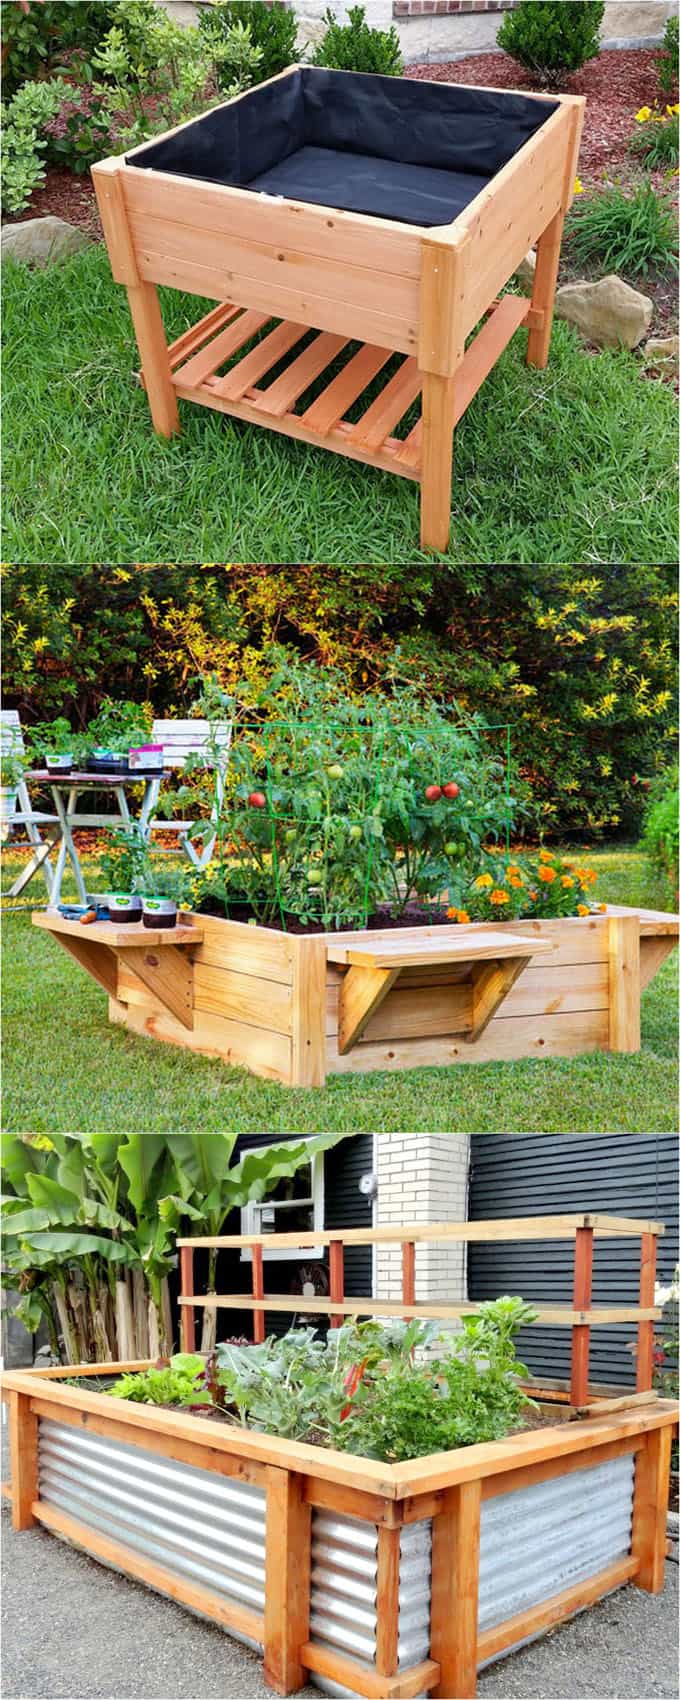 28 Amazing DIY Raised Bed Gardens